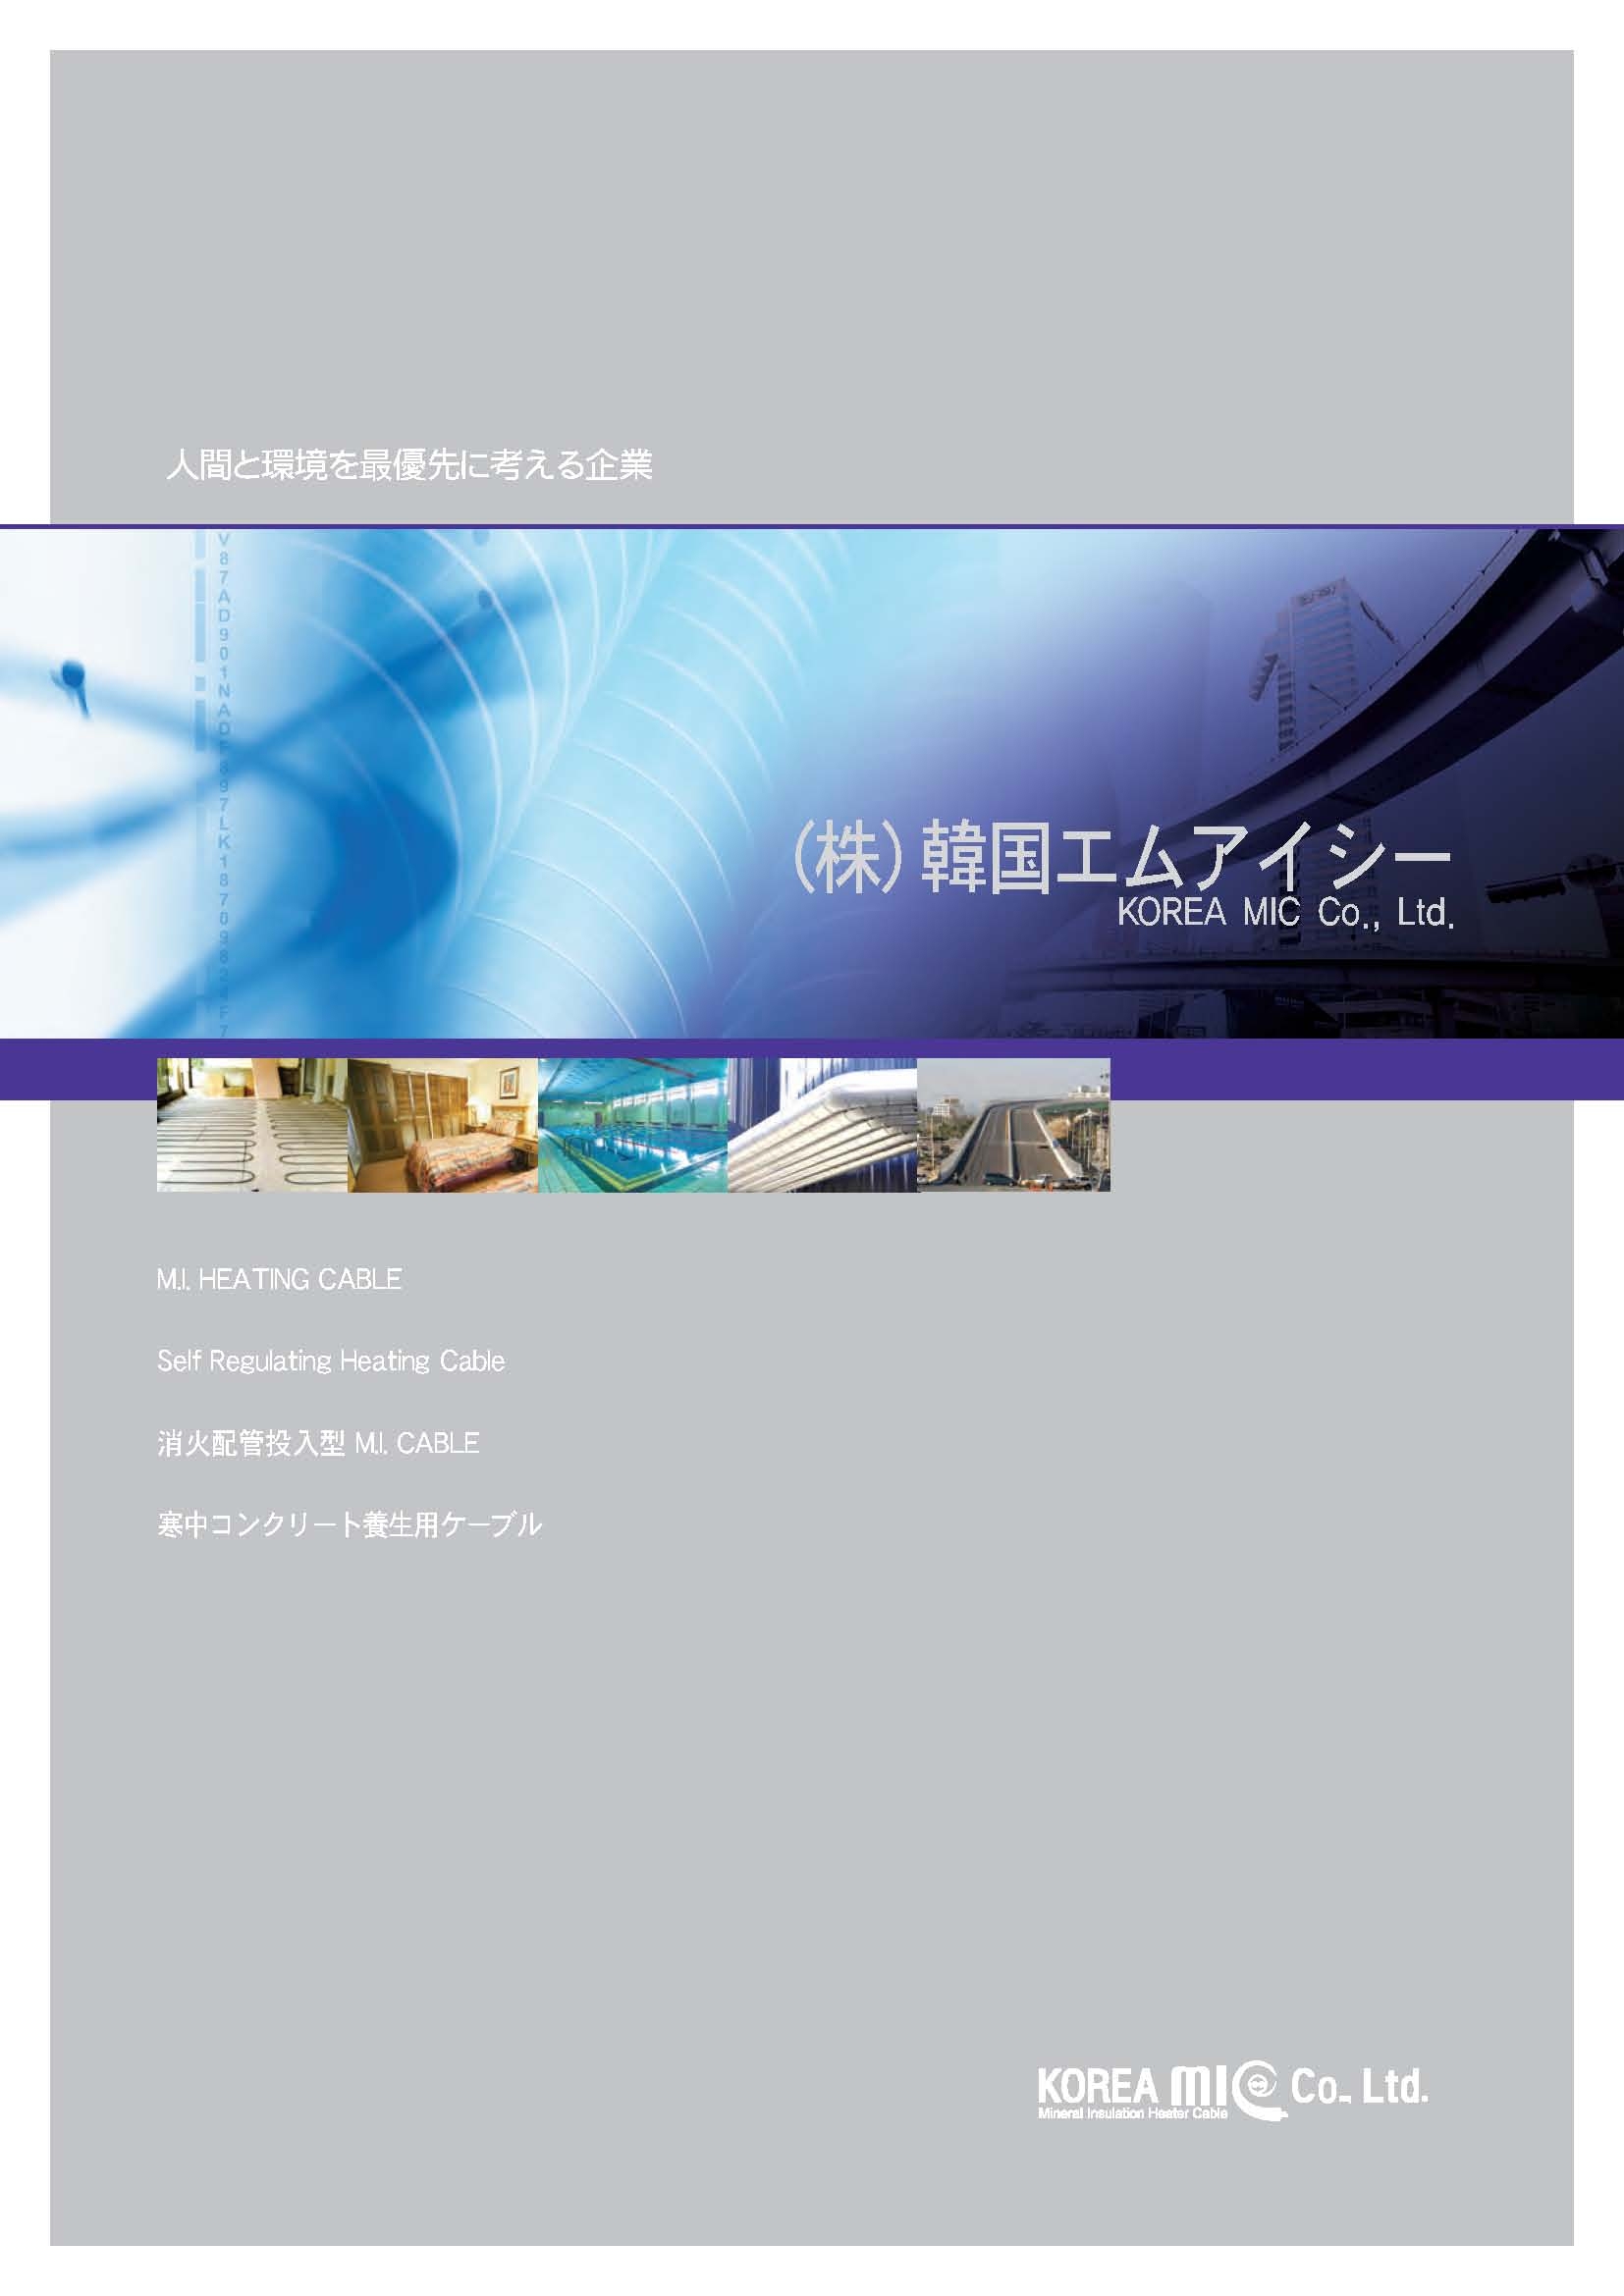 KMIC-Catalogue(Jap)_페이지_01.jpg